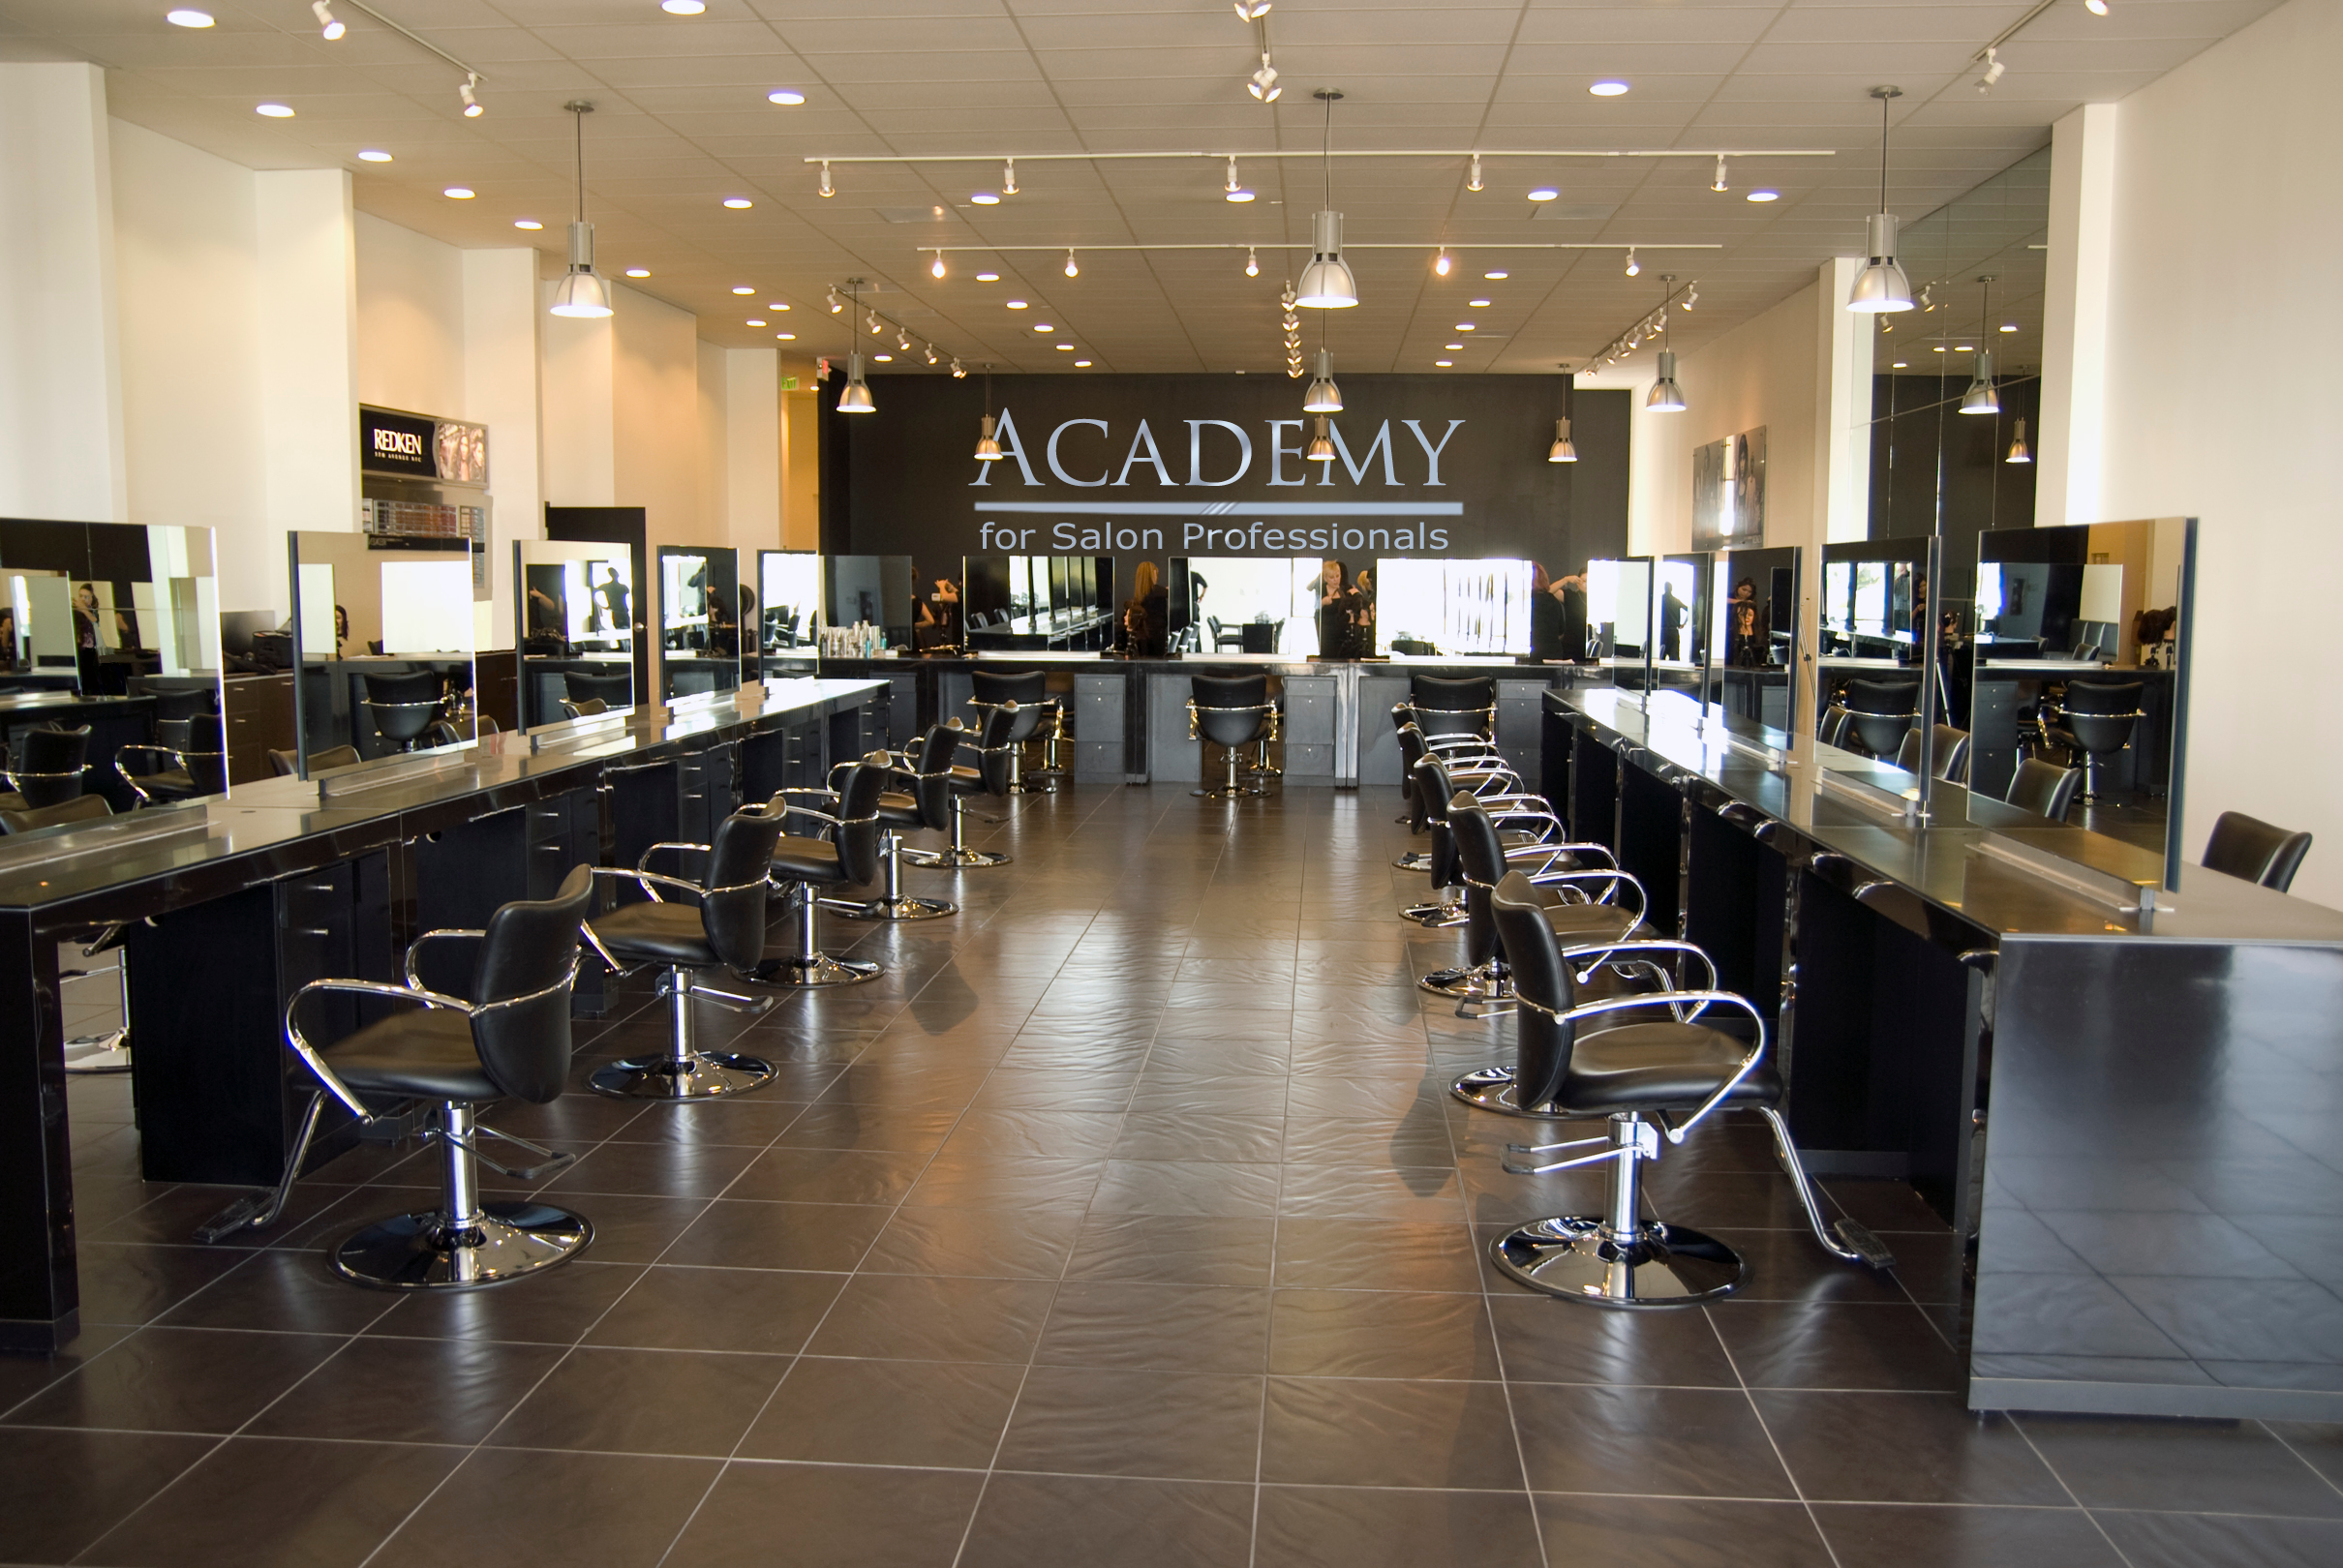 Academy for salon professionals member santa clara ca for Academy for salon professionals santa clara